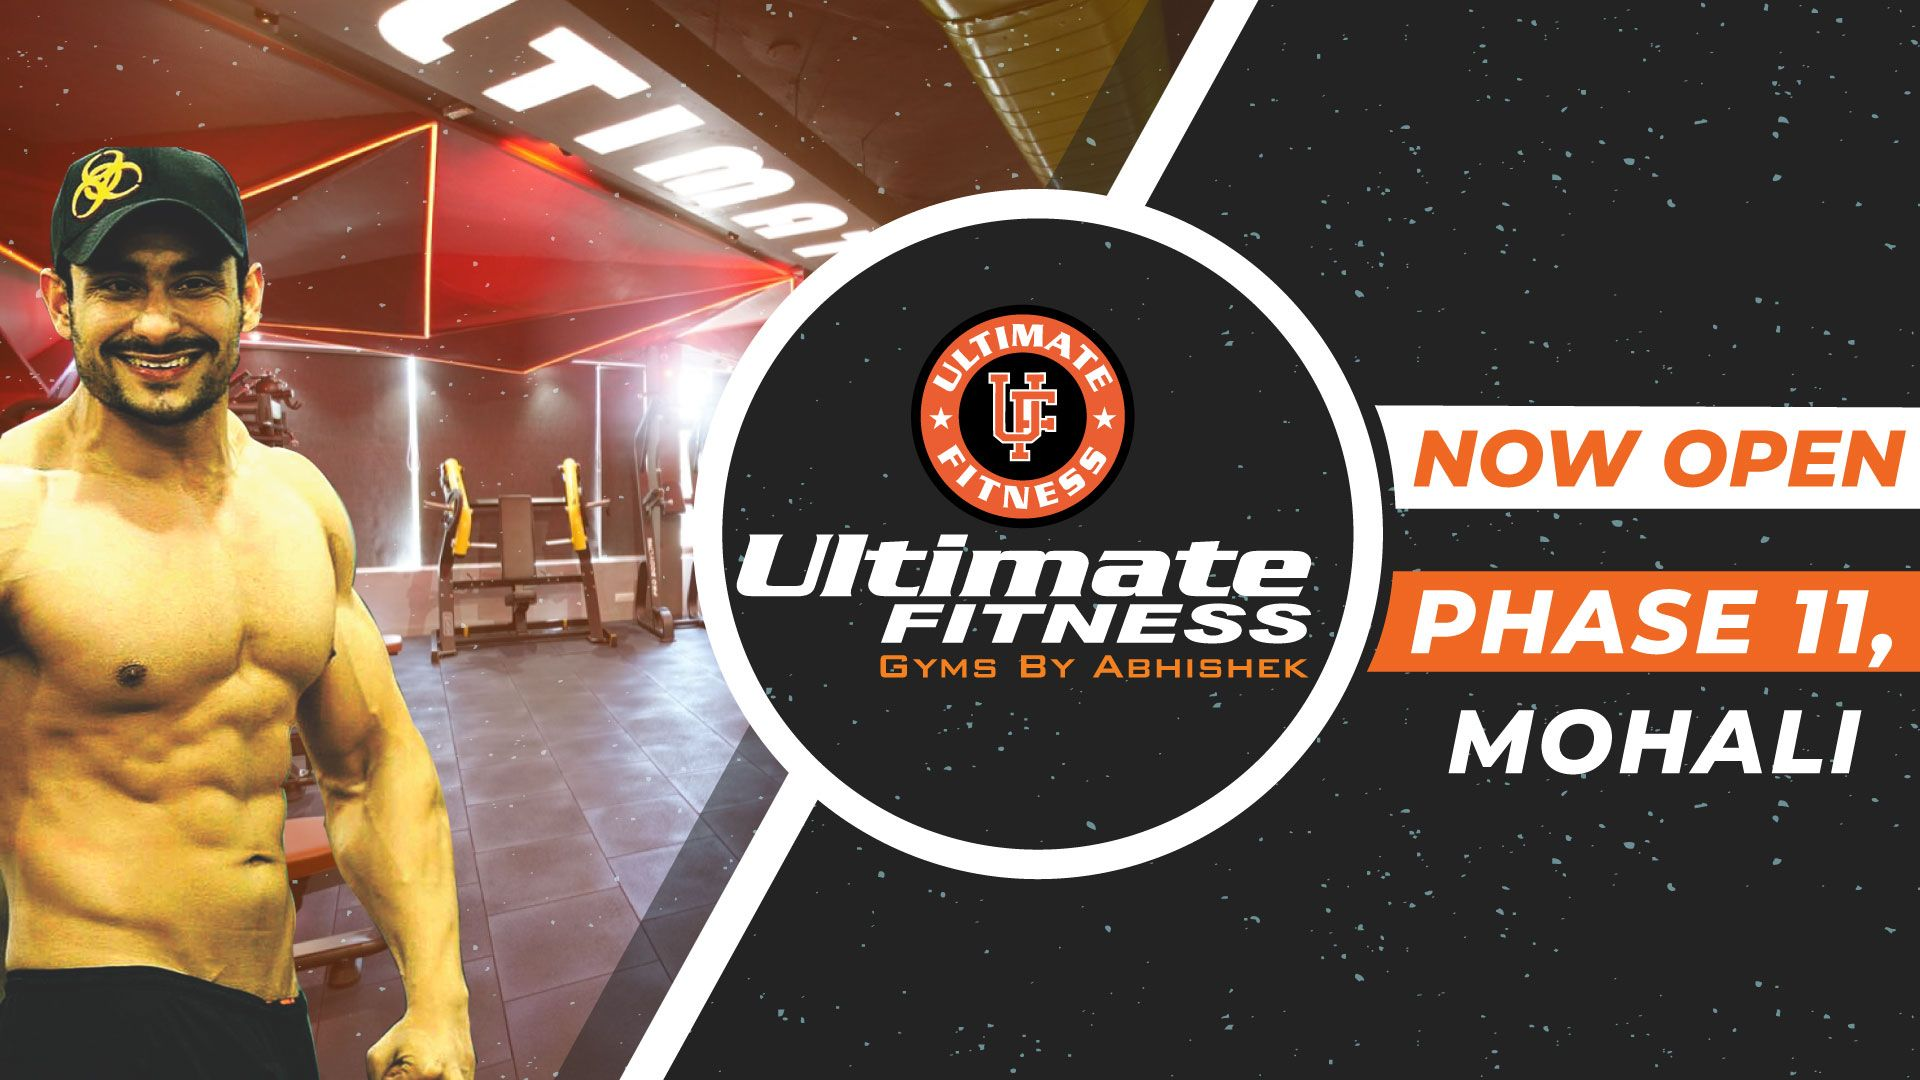 Ultimate Fitness Gyms By Abhishek Best Gym In Mohali Chandigarh Offers You Complete Fitness Best Gym Gym Workouts Fitness Event